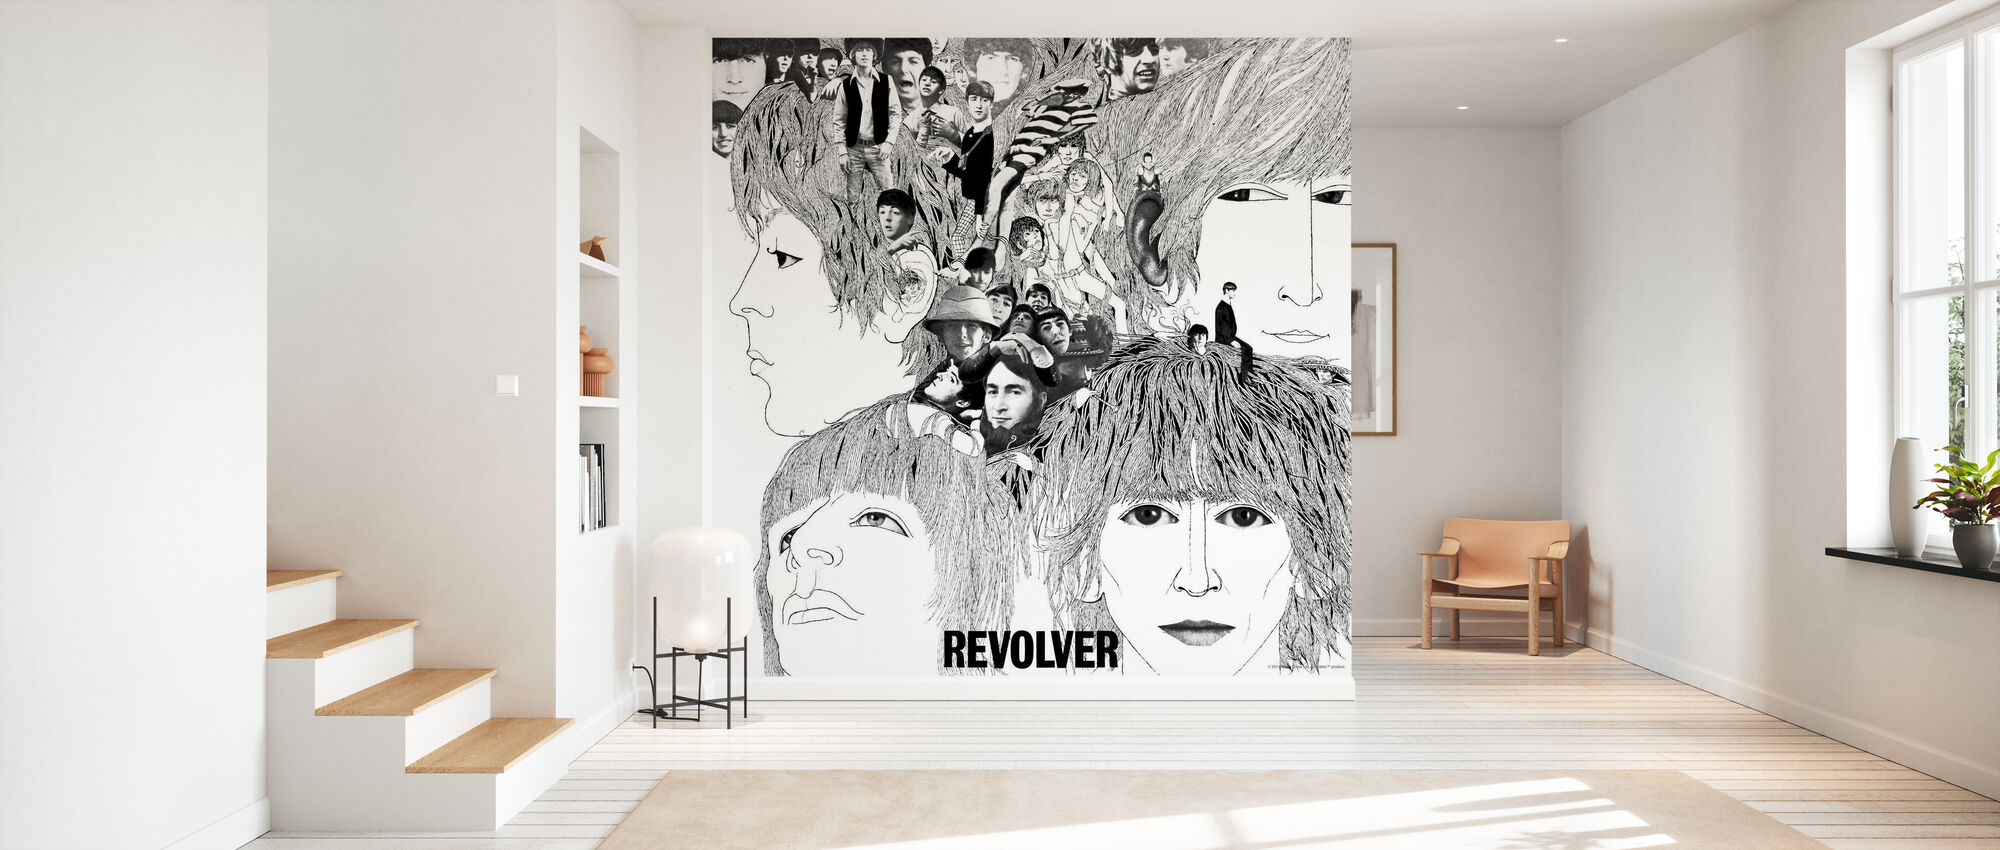 Beatles - Revolver - Wallpaper - Hallway